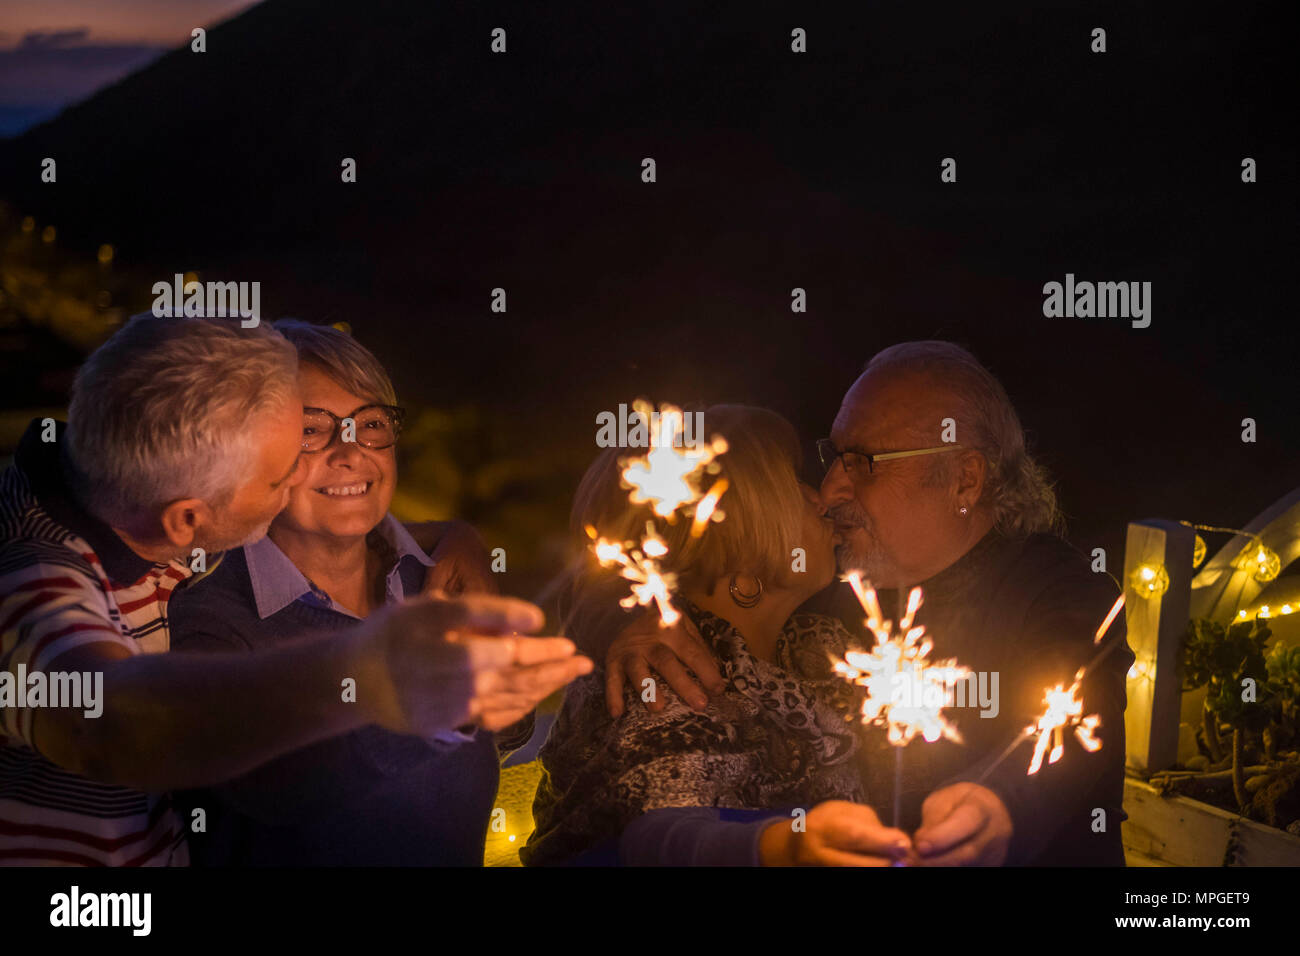 two couple kiss and celebrate event like birthday or new year eve outdoor with sparkles. happiness and hope for the future concept. senior lifestyle r - Stock Image